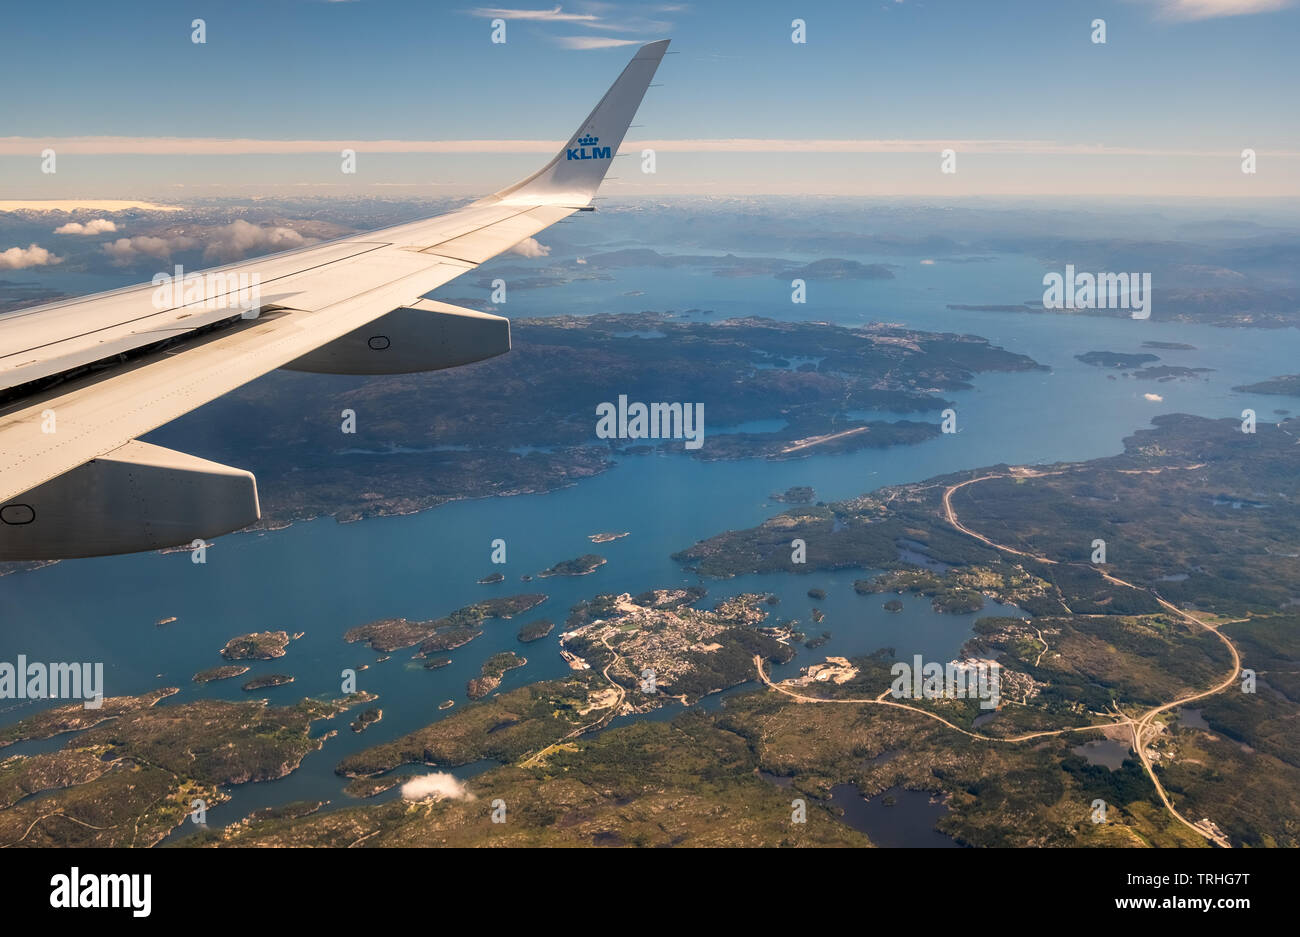 Approach to Bergen airport, view over the fjords of the fjords of Bergen, Blomsterdalen, Kokstad, Hordaland, Norway, Scandinavia, Europe, NOR, travel, Stock Photo